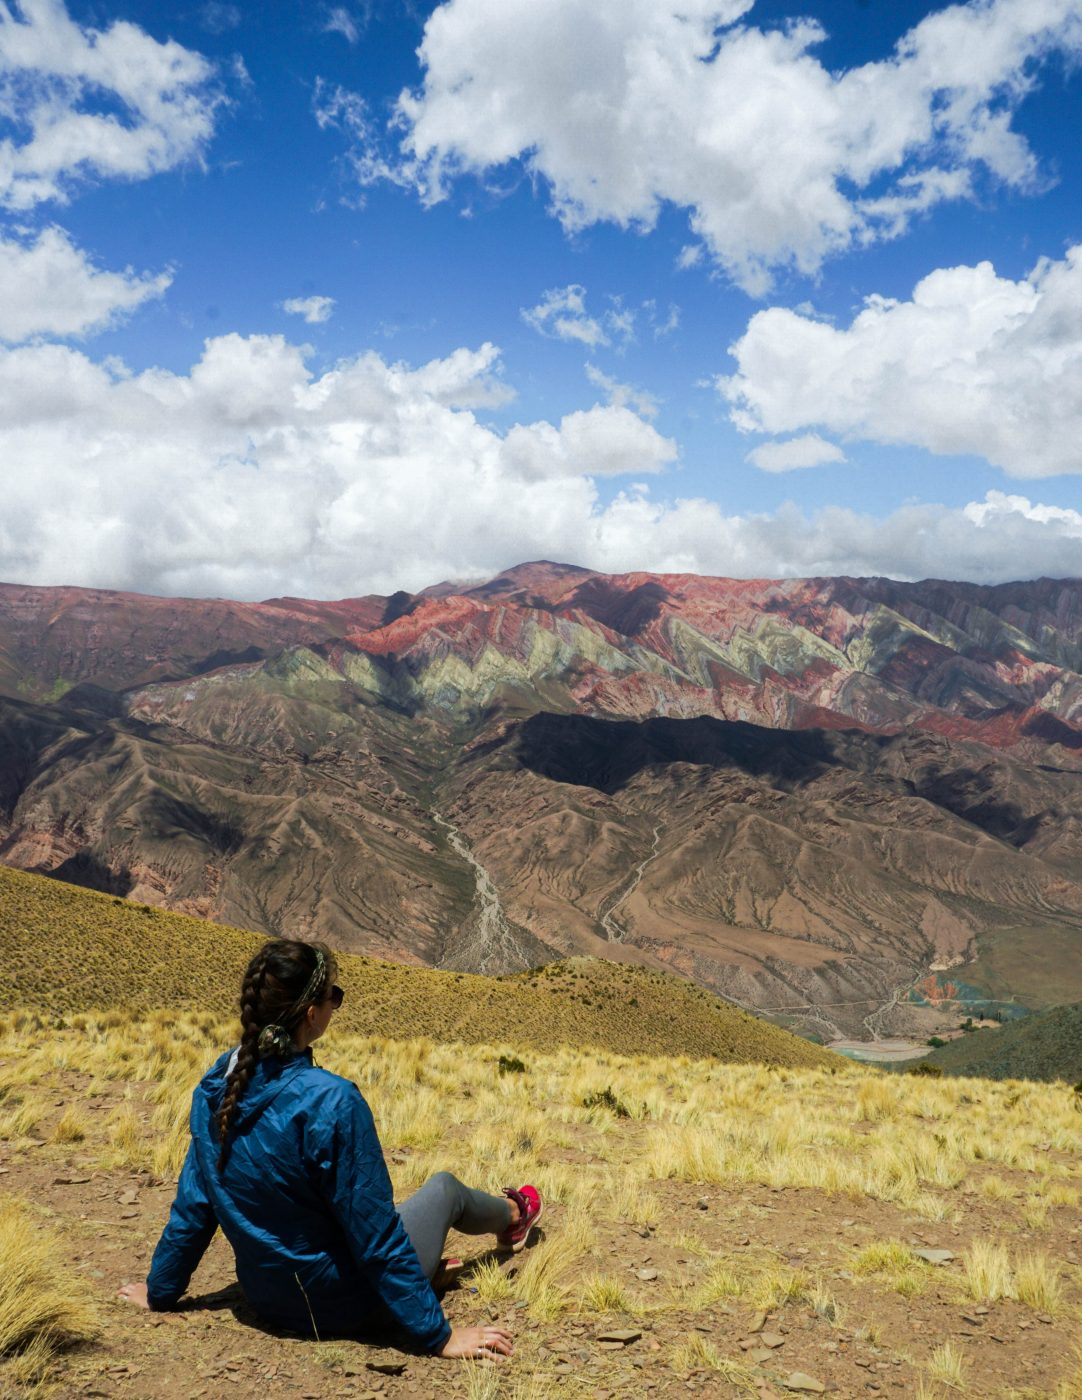 Sierra del hornocal All you need to know about Jujuy Argentina